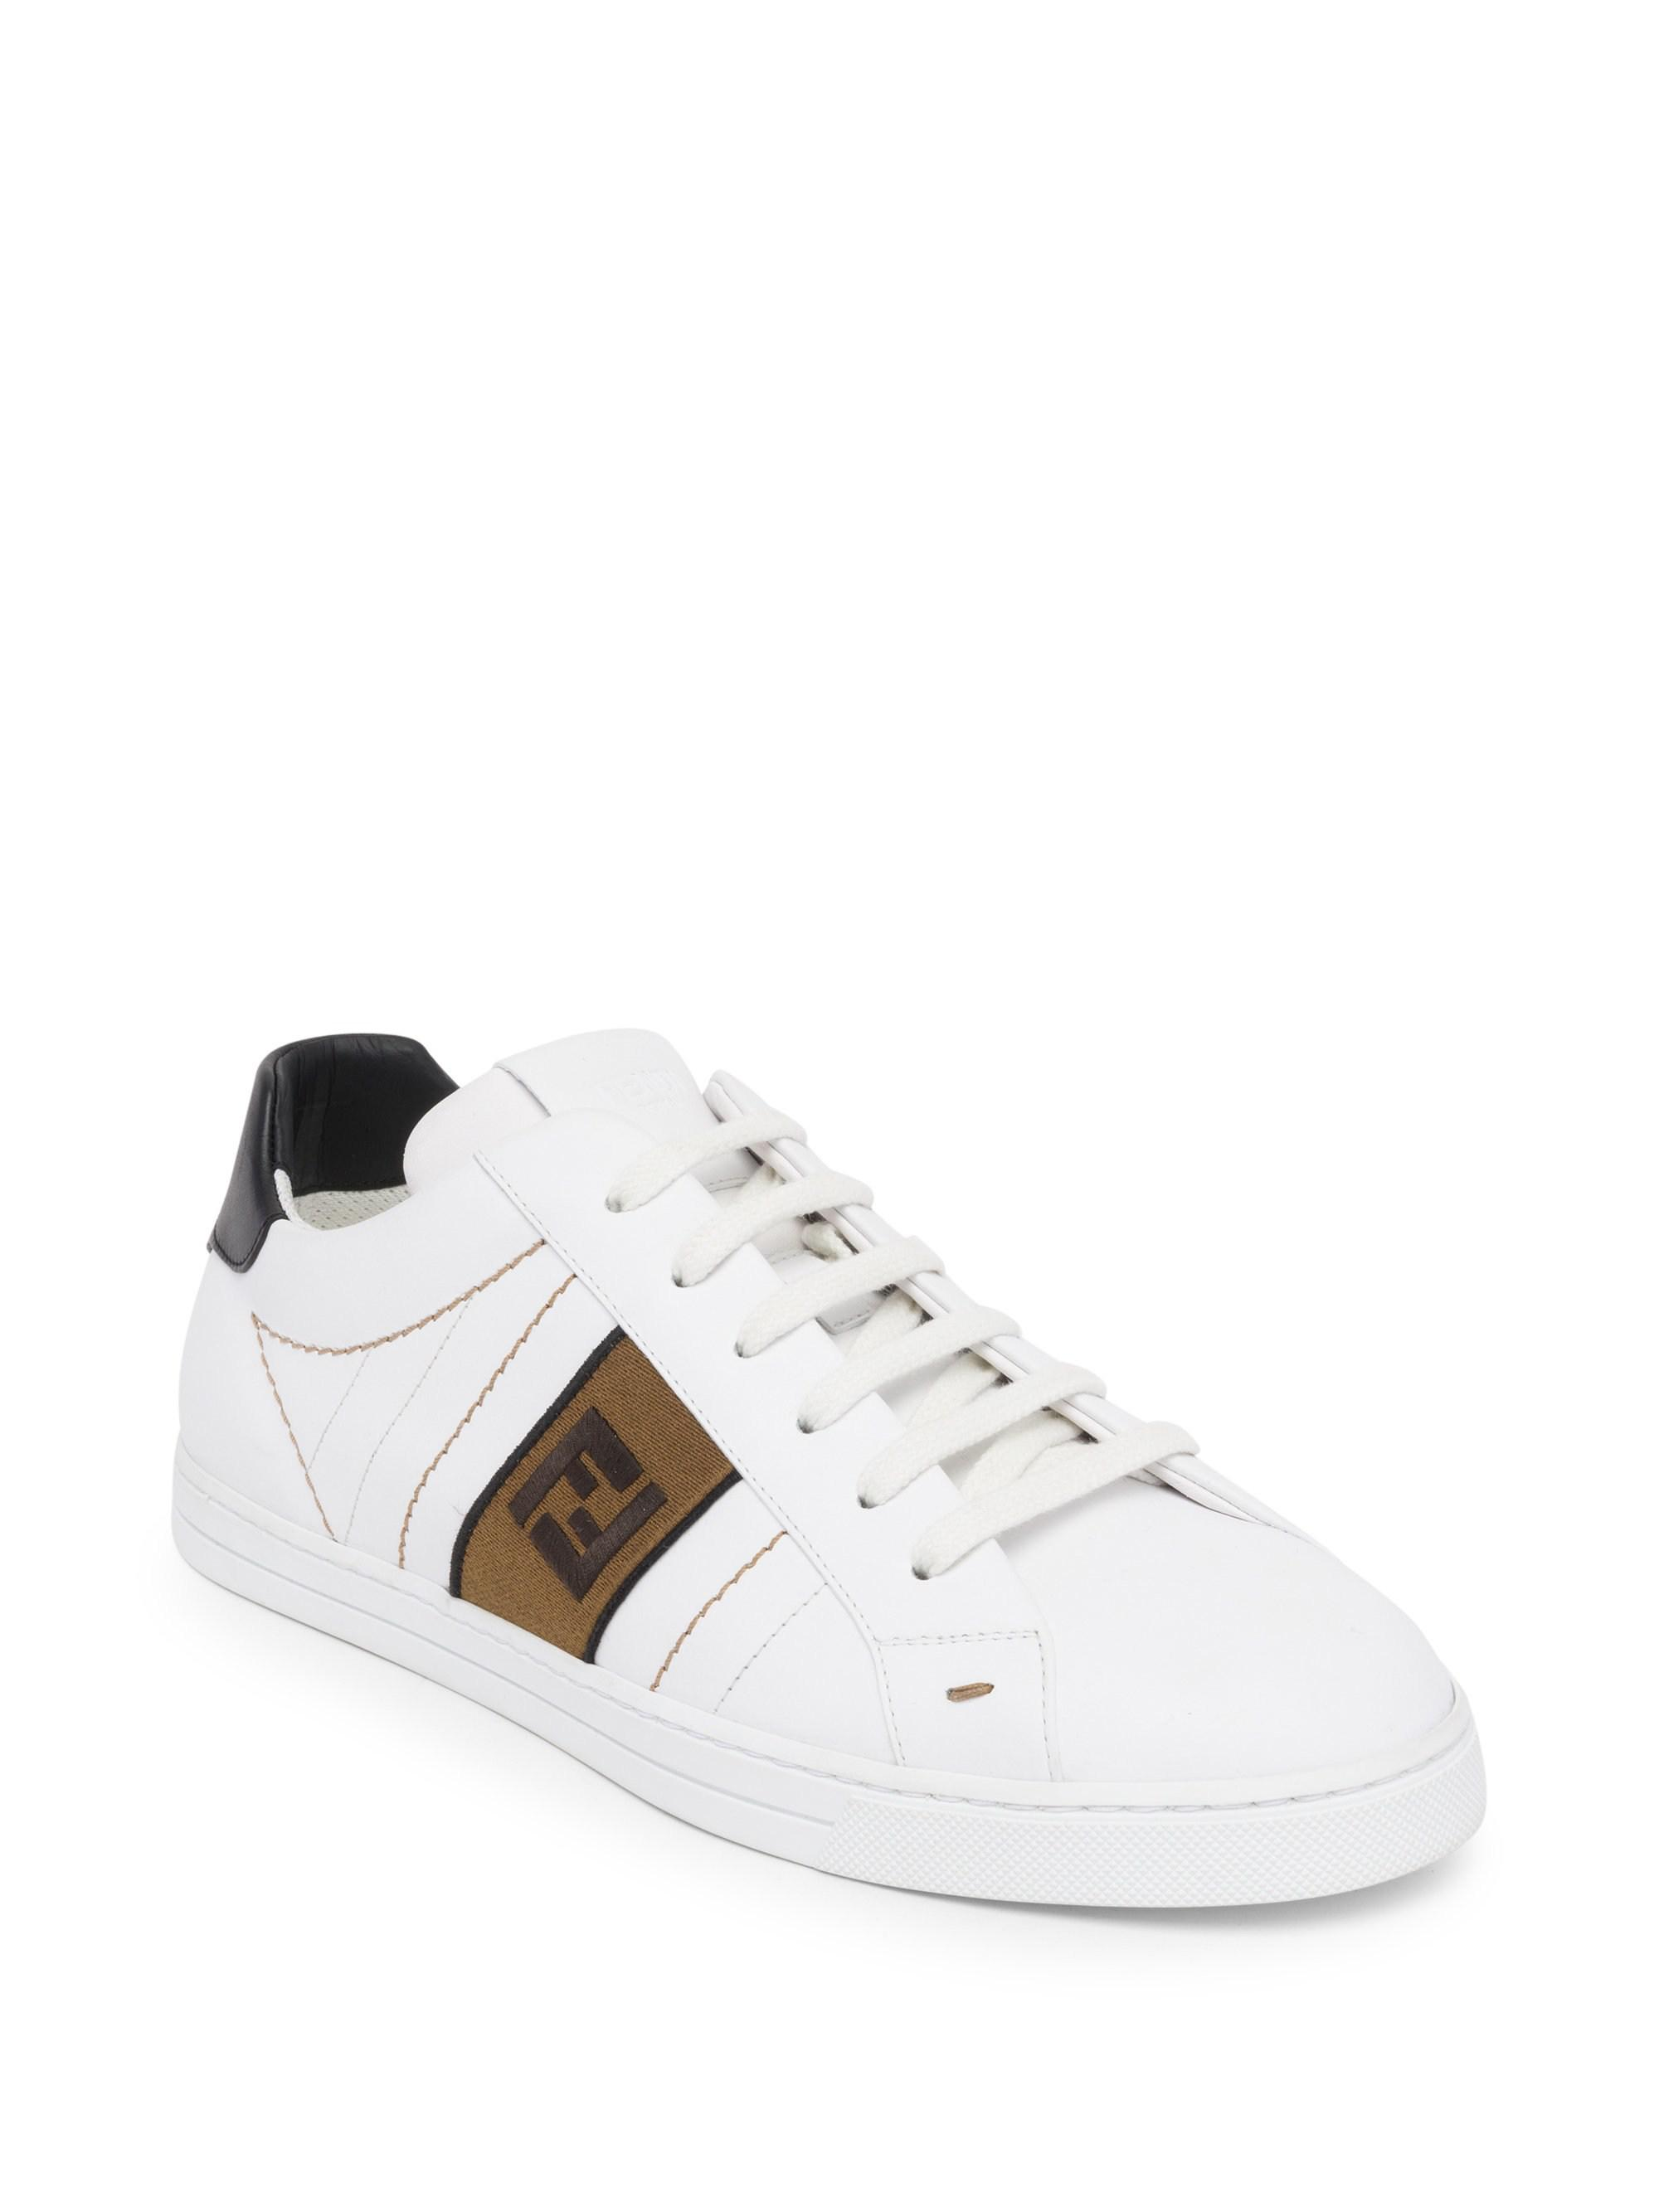 FendiFF Embroidered Sneakers